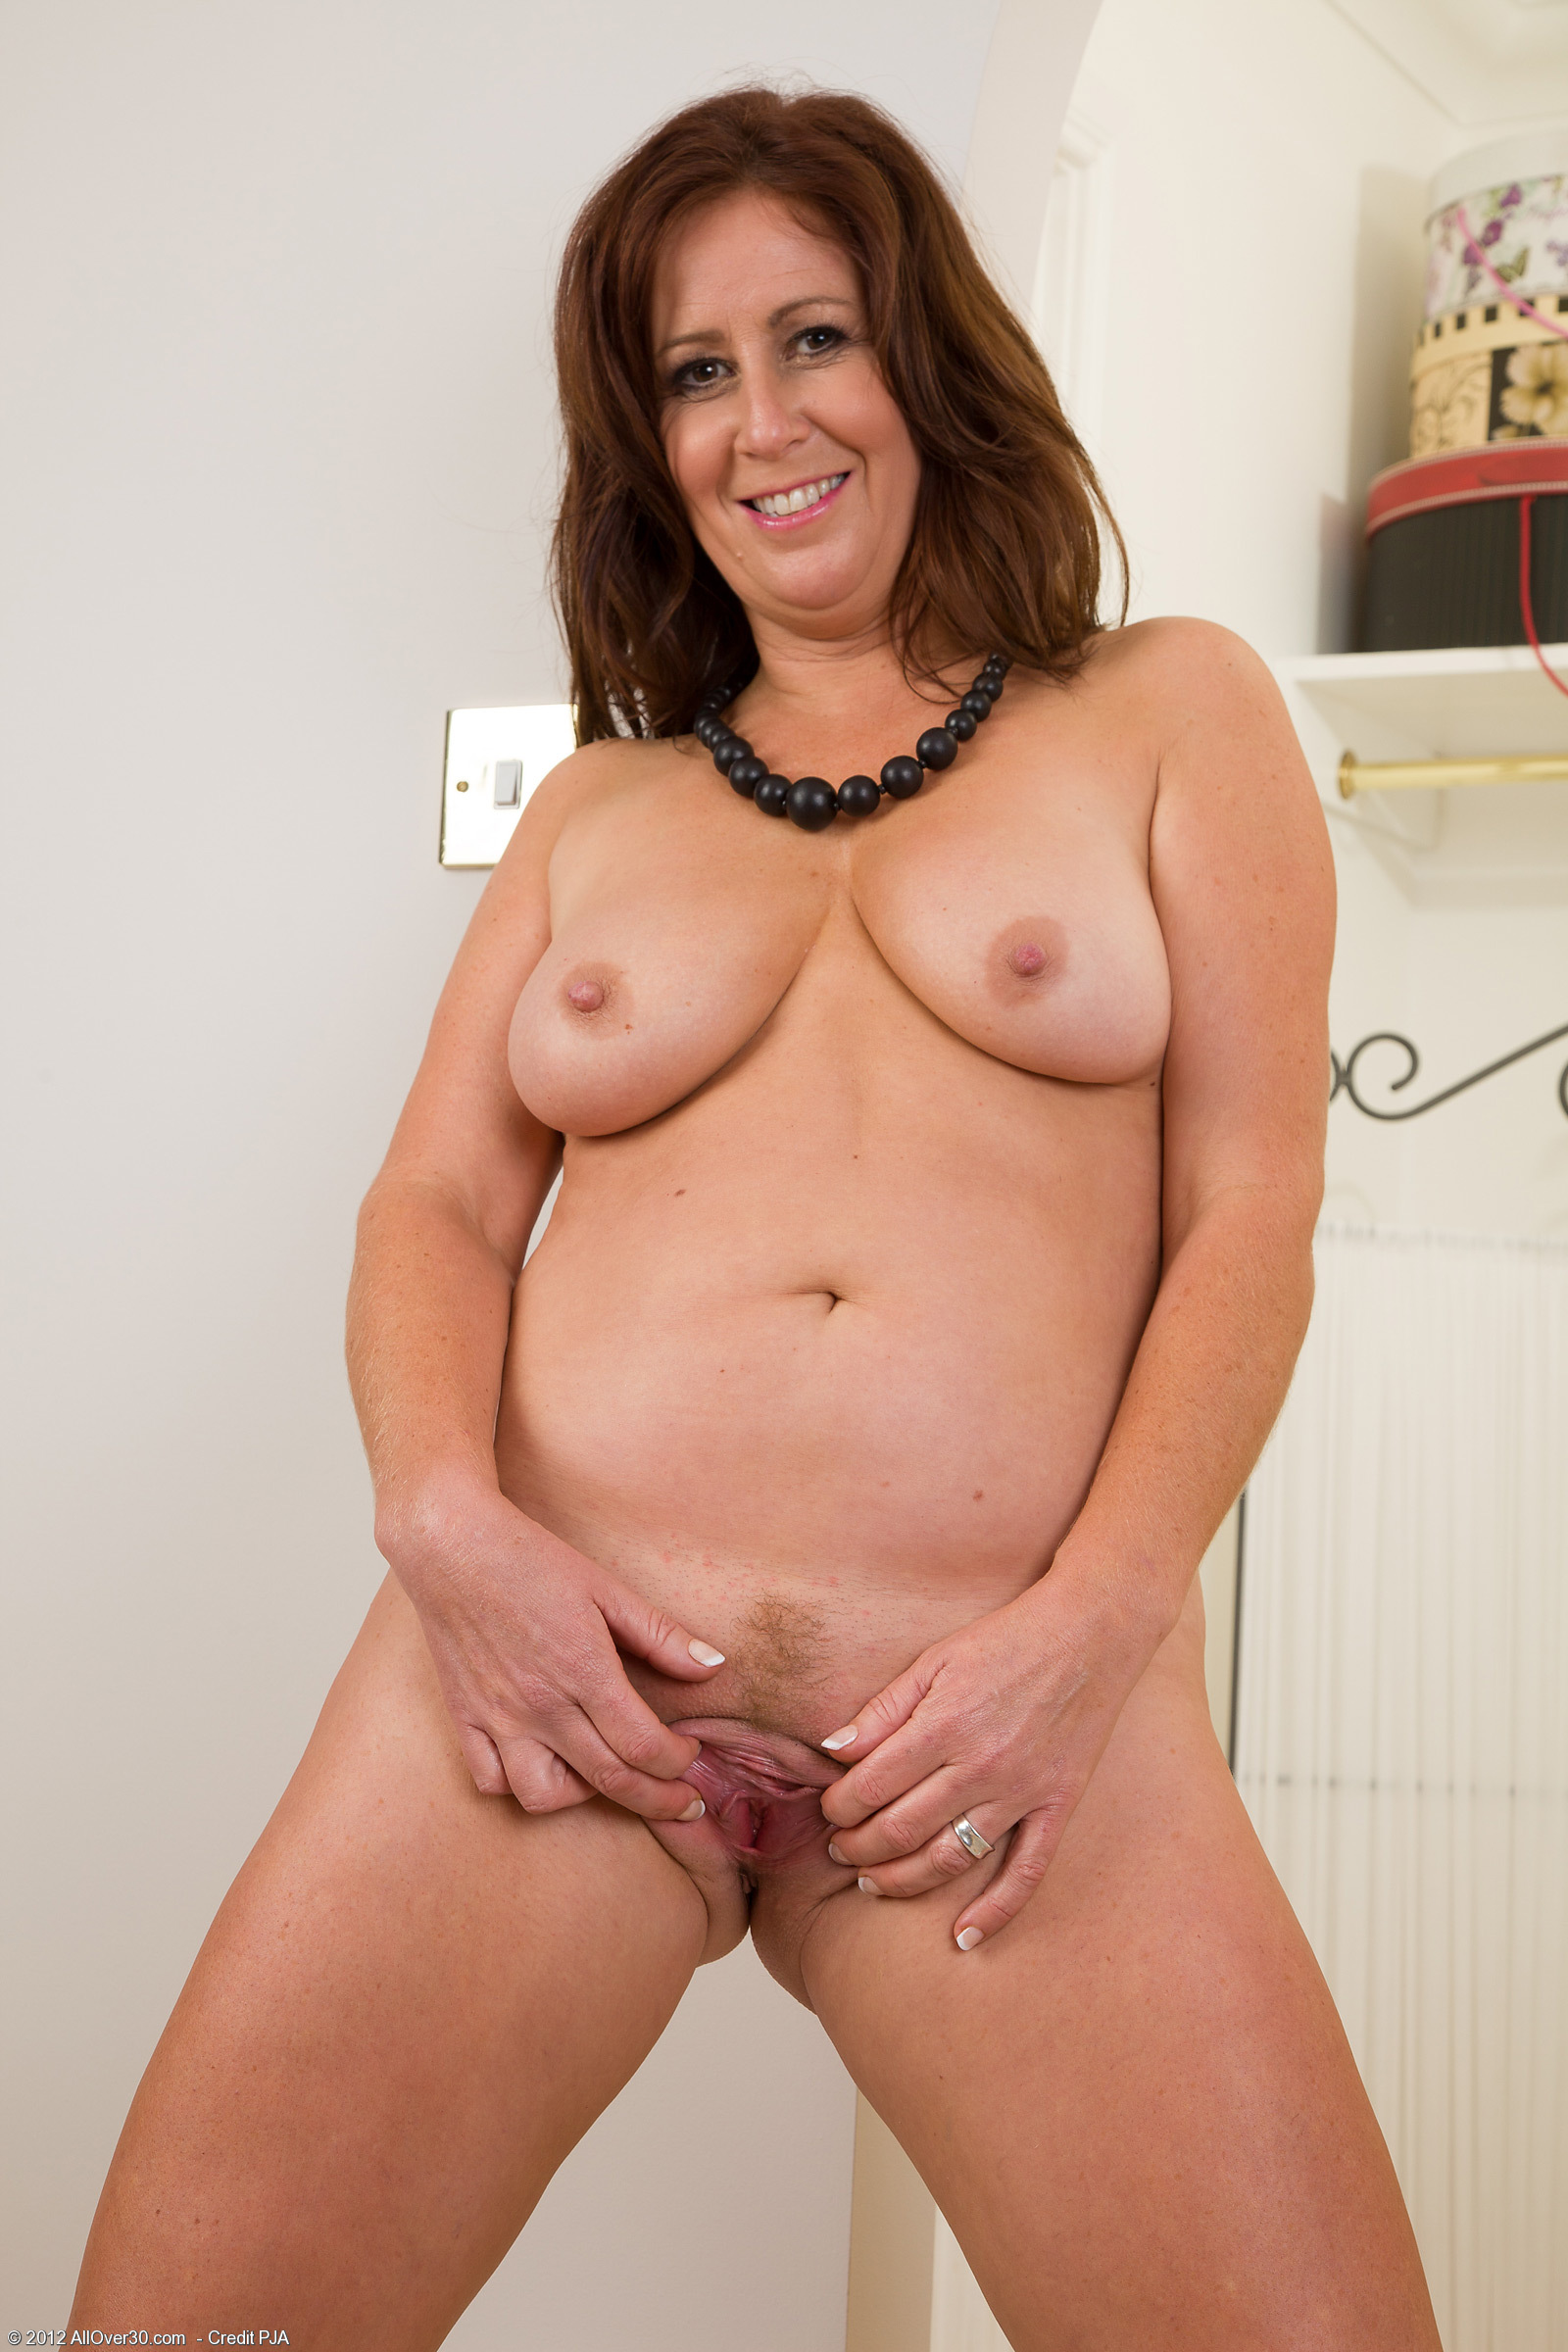 search results for hollyextra cam whores the best cam #milf #mature #pussy #shaved #trimmed #naked #spreadingpussy #standingspreads #niceslit #showingpussy #lickablepussy